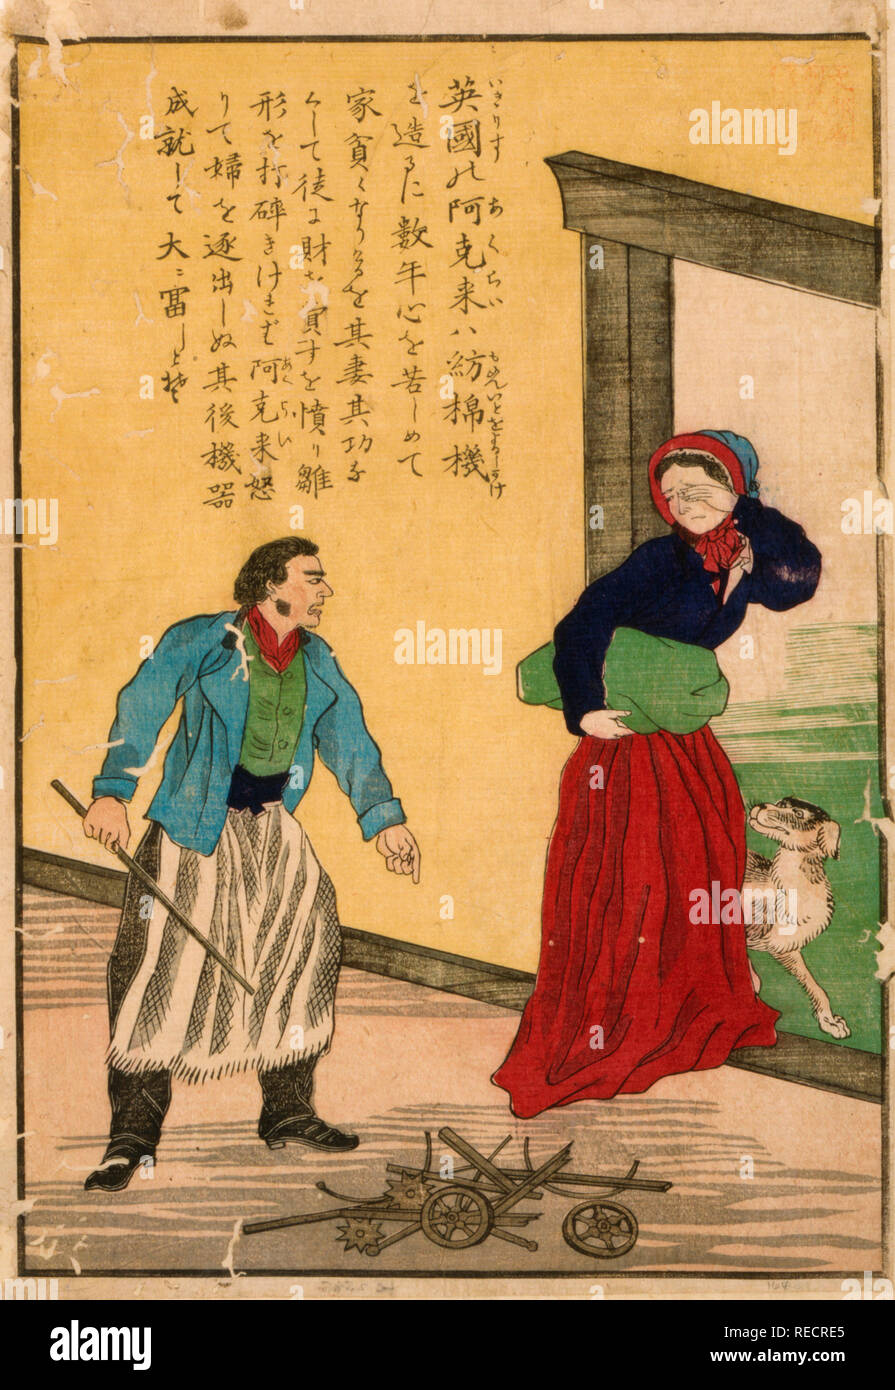 Sir Richard Arkwright, inventor of the spinning machine - Japanese print shows an angry Arkwright sending his wife to her parents because she deliberately broke his spinning wheel. Circa 1850 - Stock Image